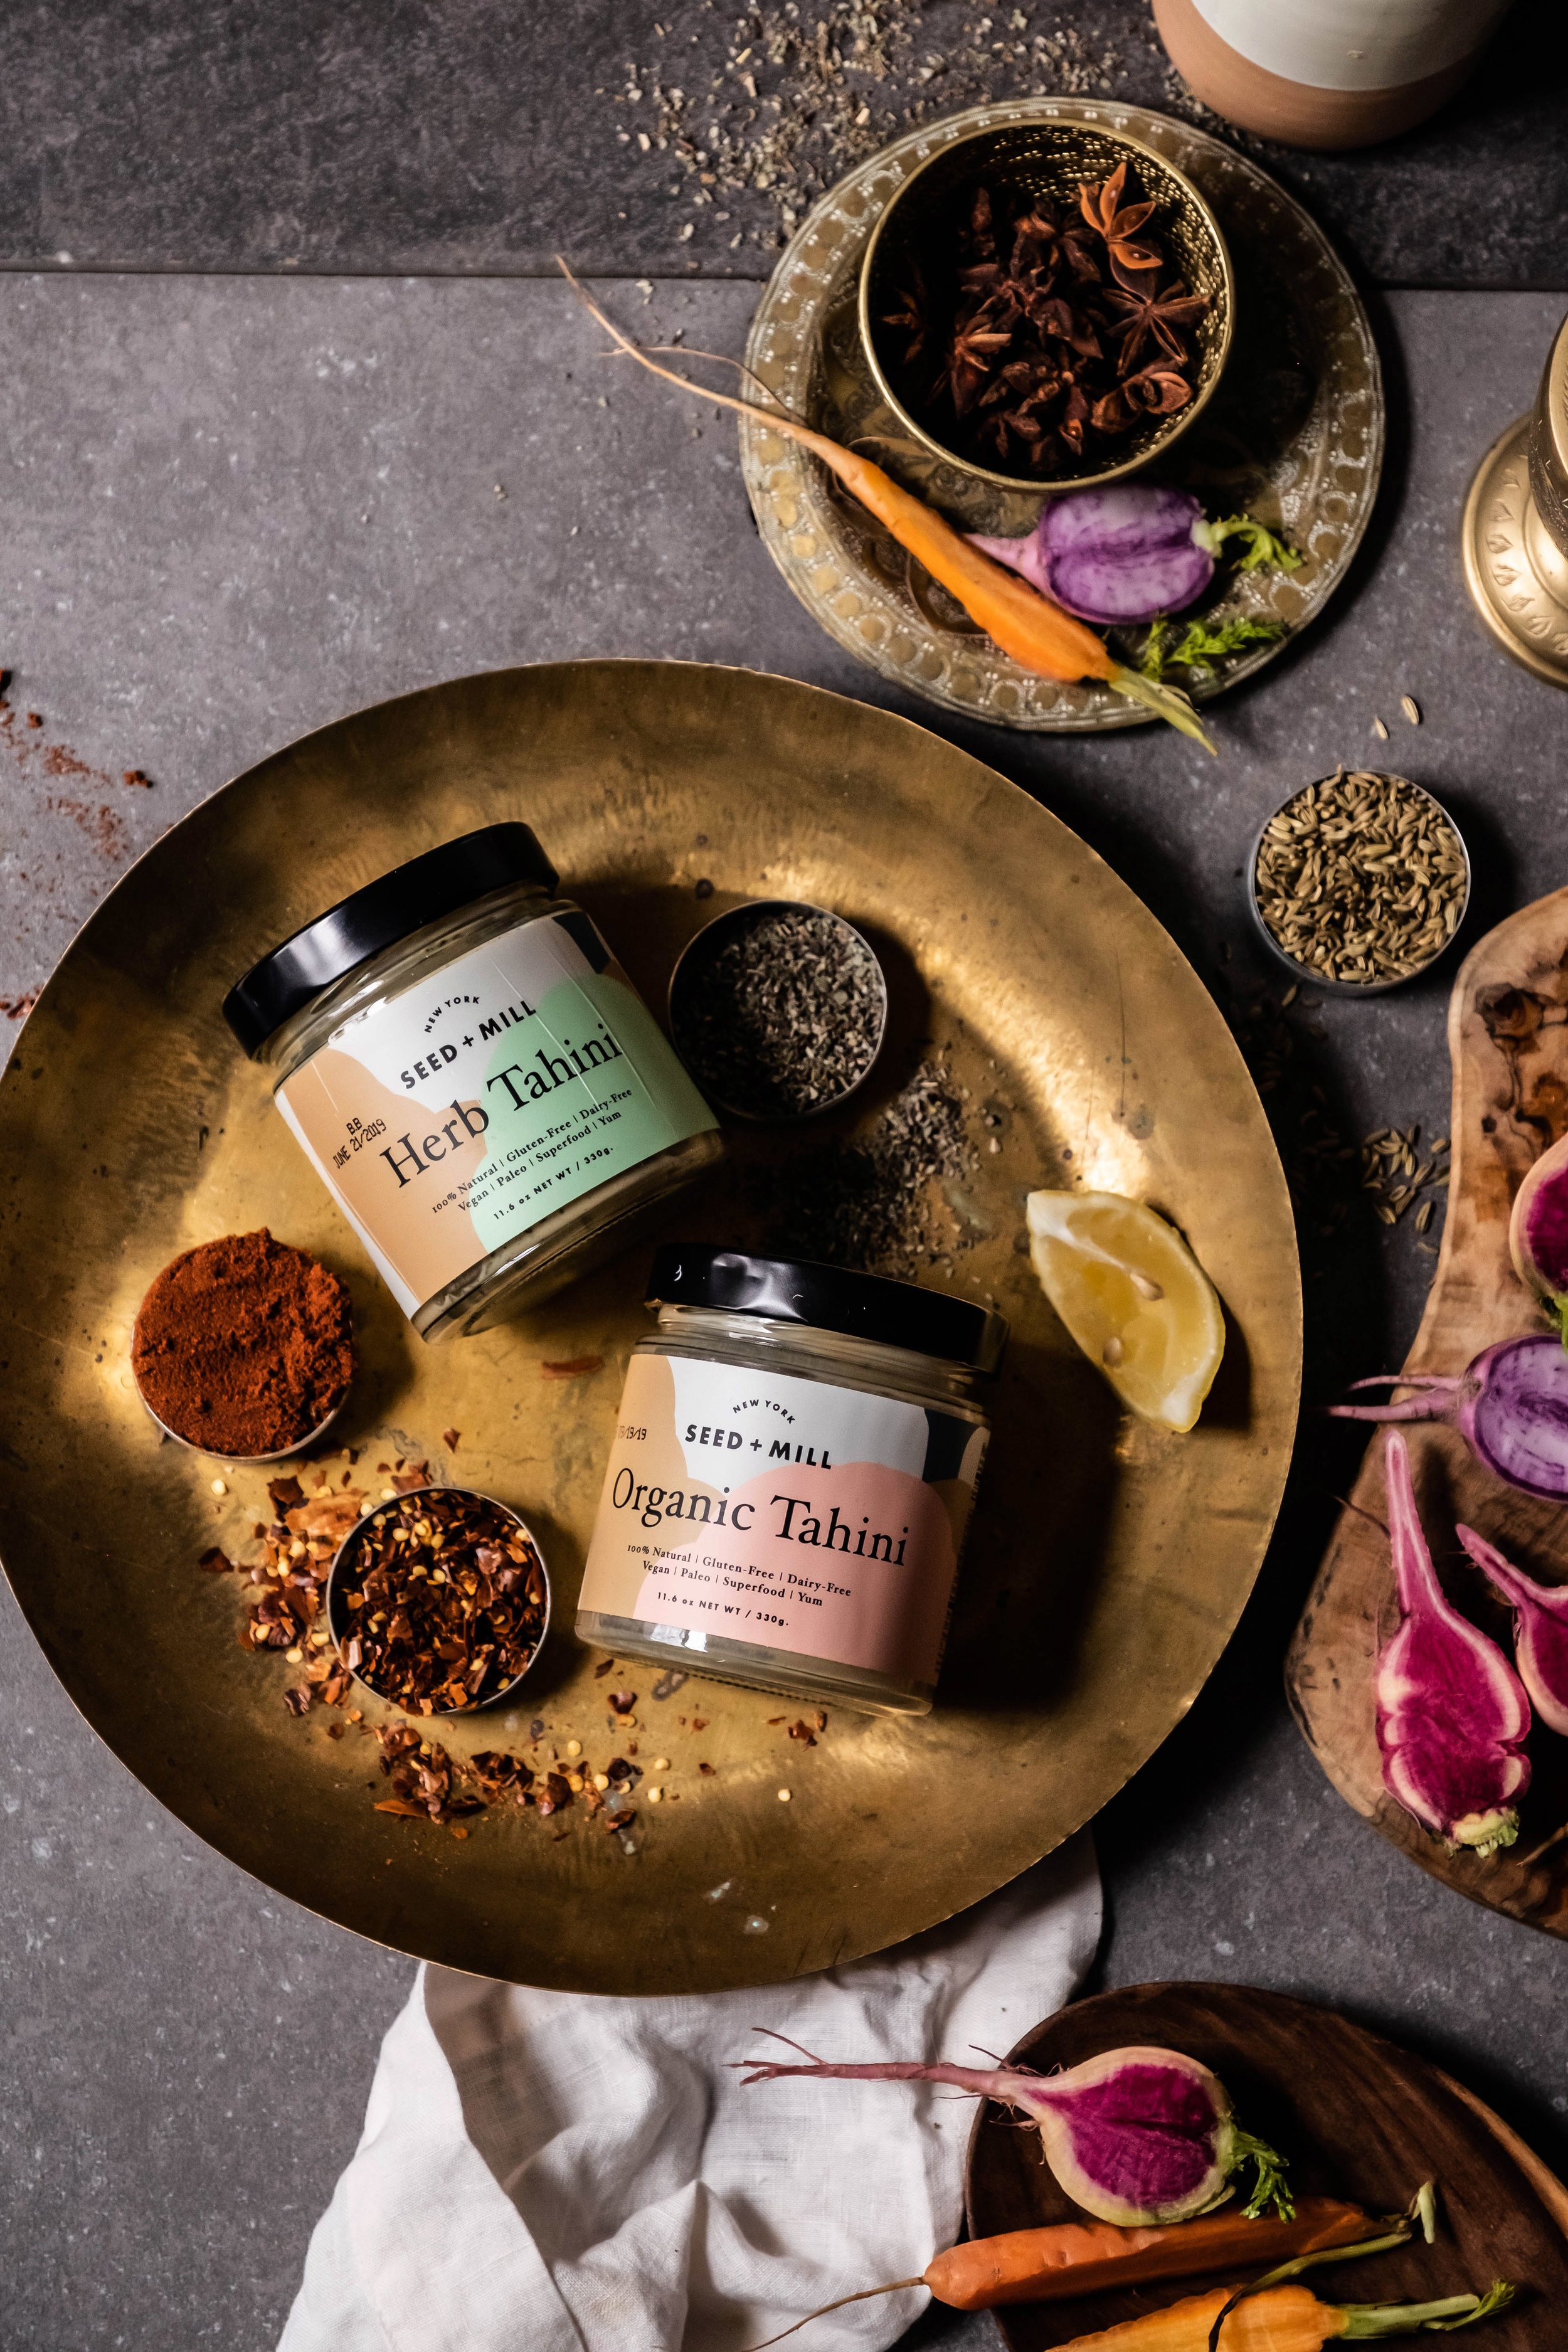 ROSE & IVY Journal Holiday Gifting Flavors of the Middle East Seed + Mill Tahini